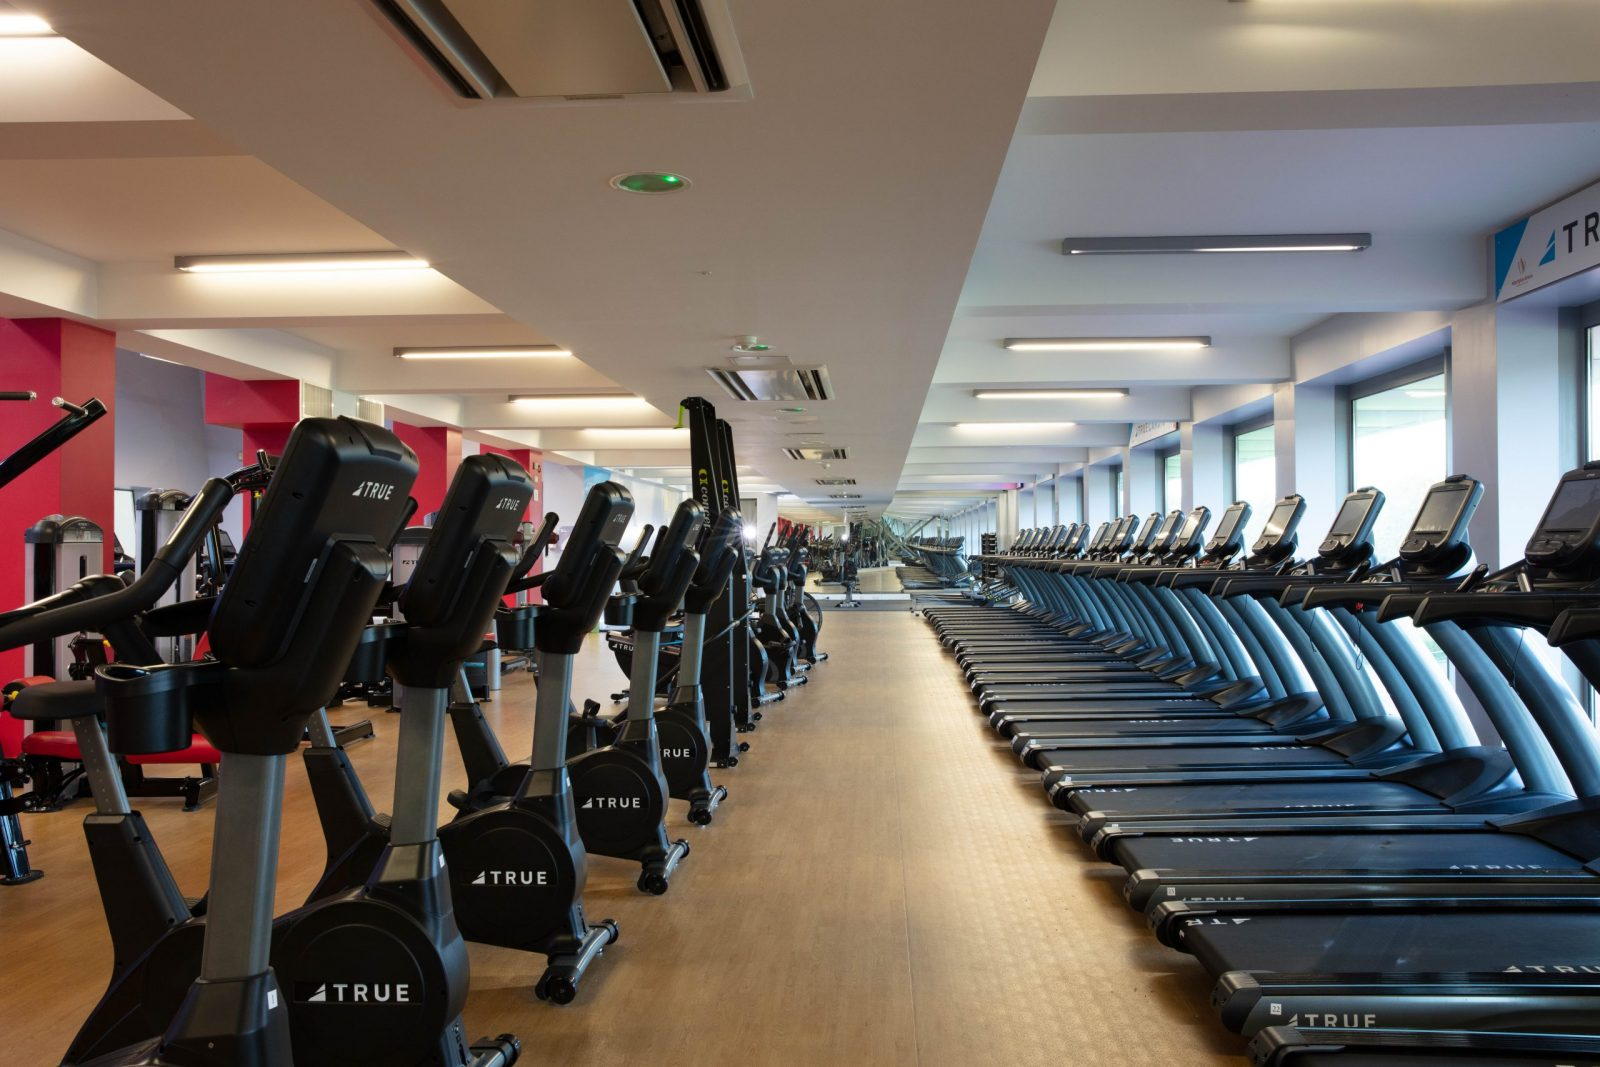 treadmills and bike exercising machines